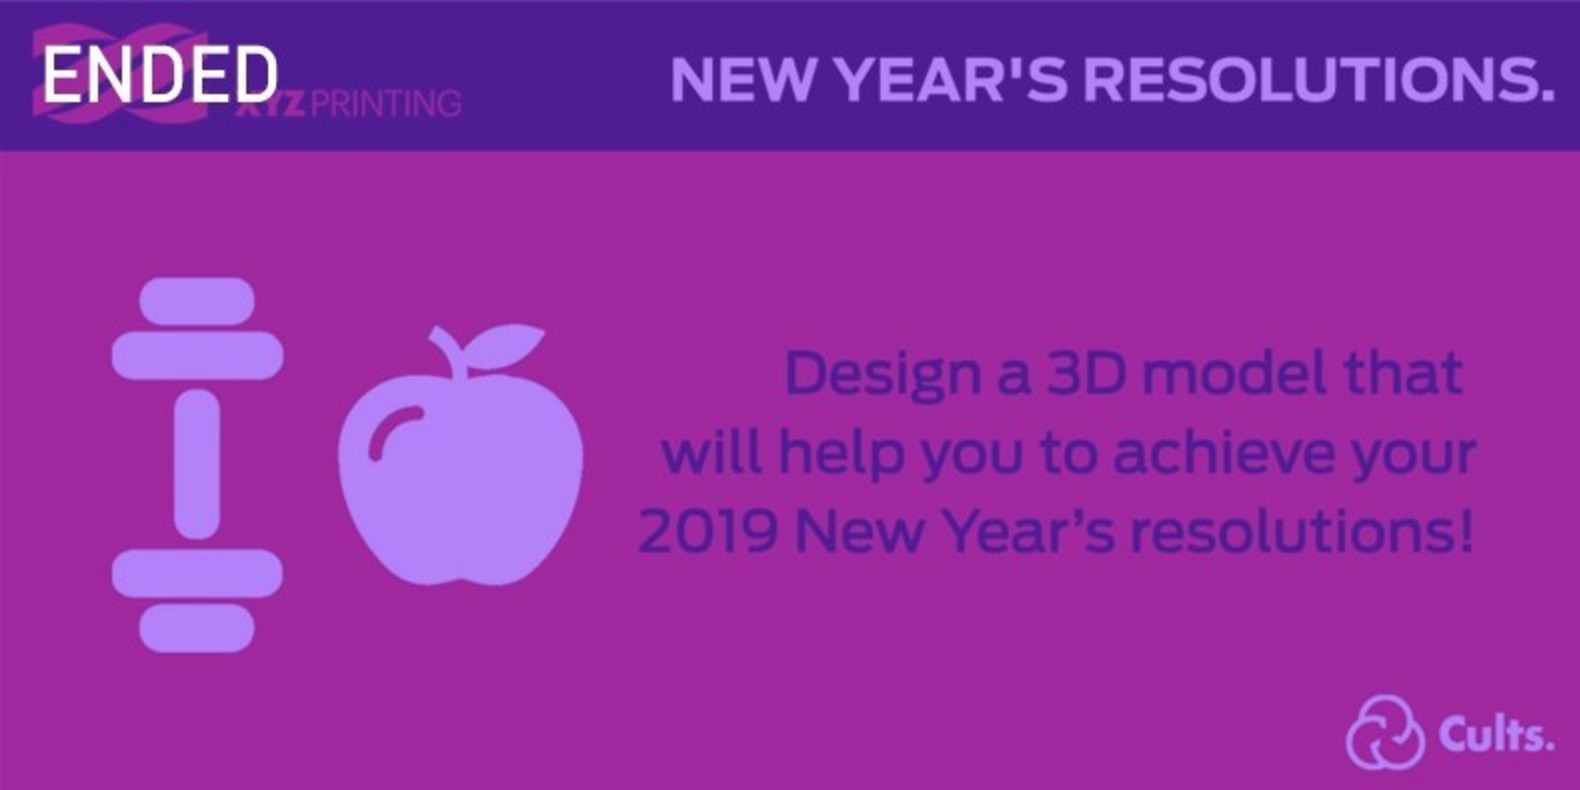 The challenge of design and 3D printing about New Year's Resolutions.